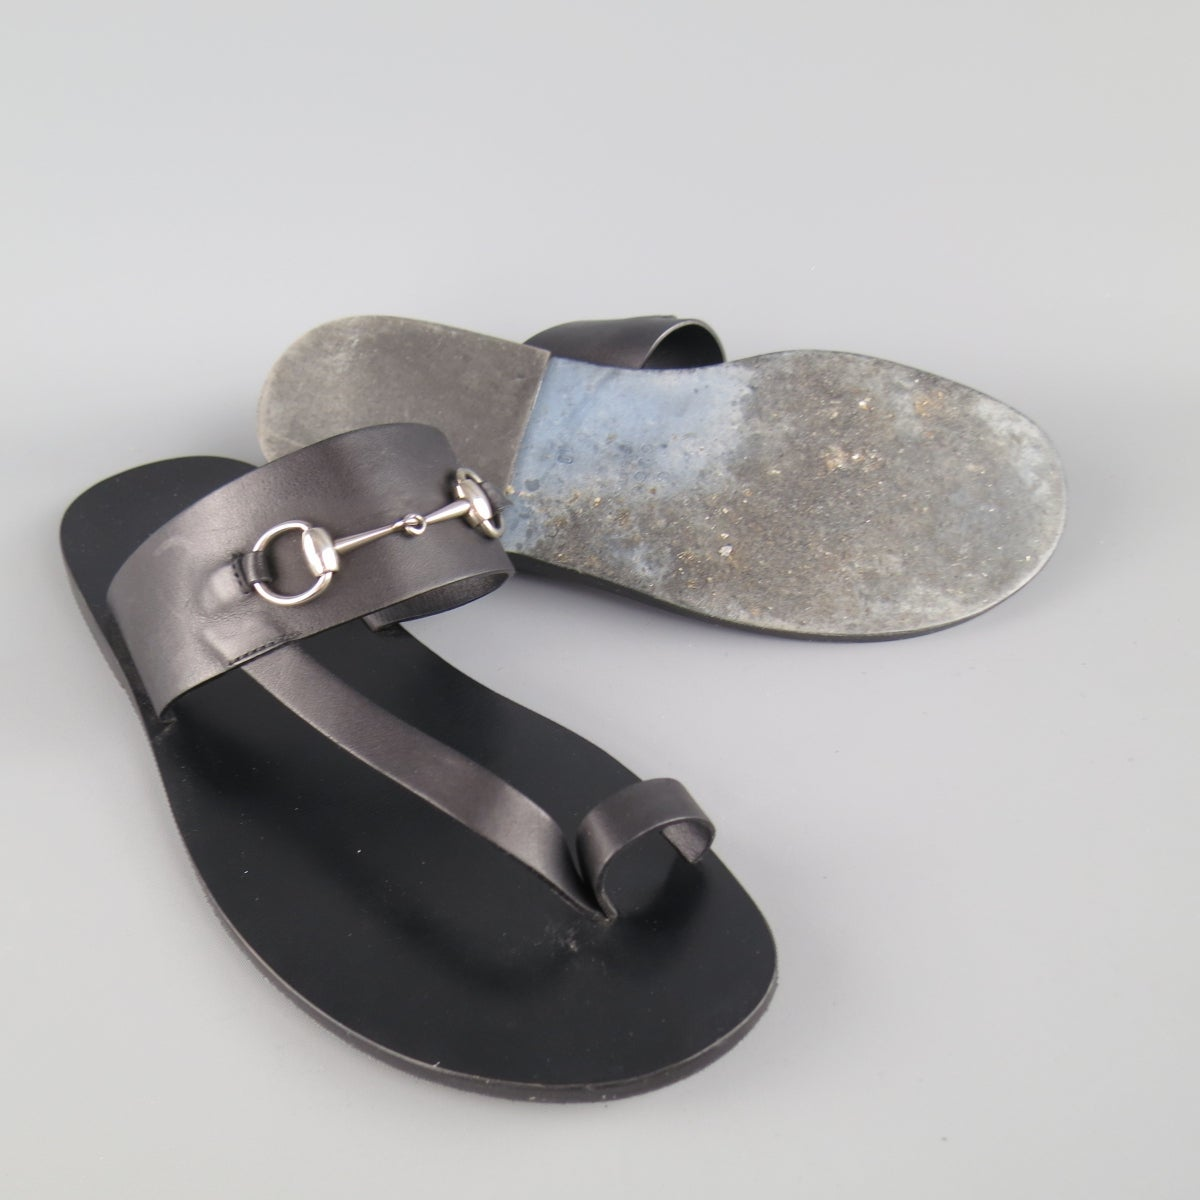 2bf03ae91 Men's GUCCI Size 11 Black Leather Silver Horsebit Toe Strap Sandals at  1stdibs